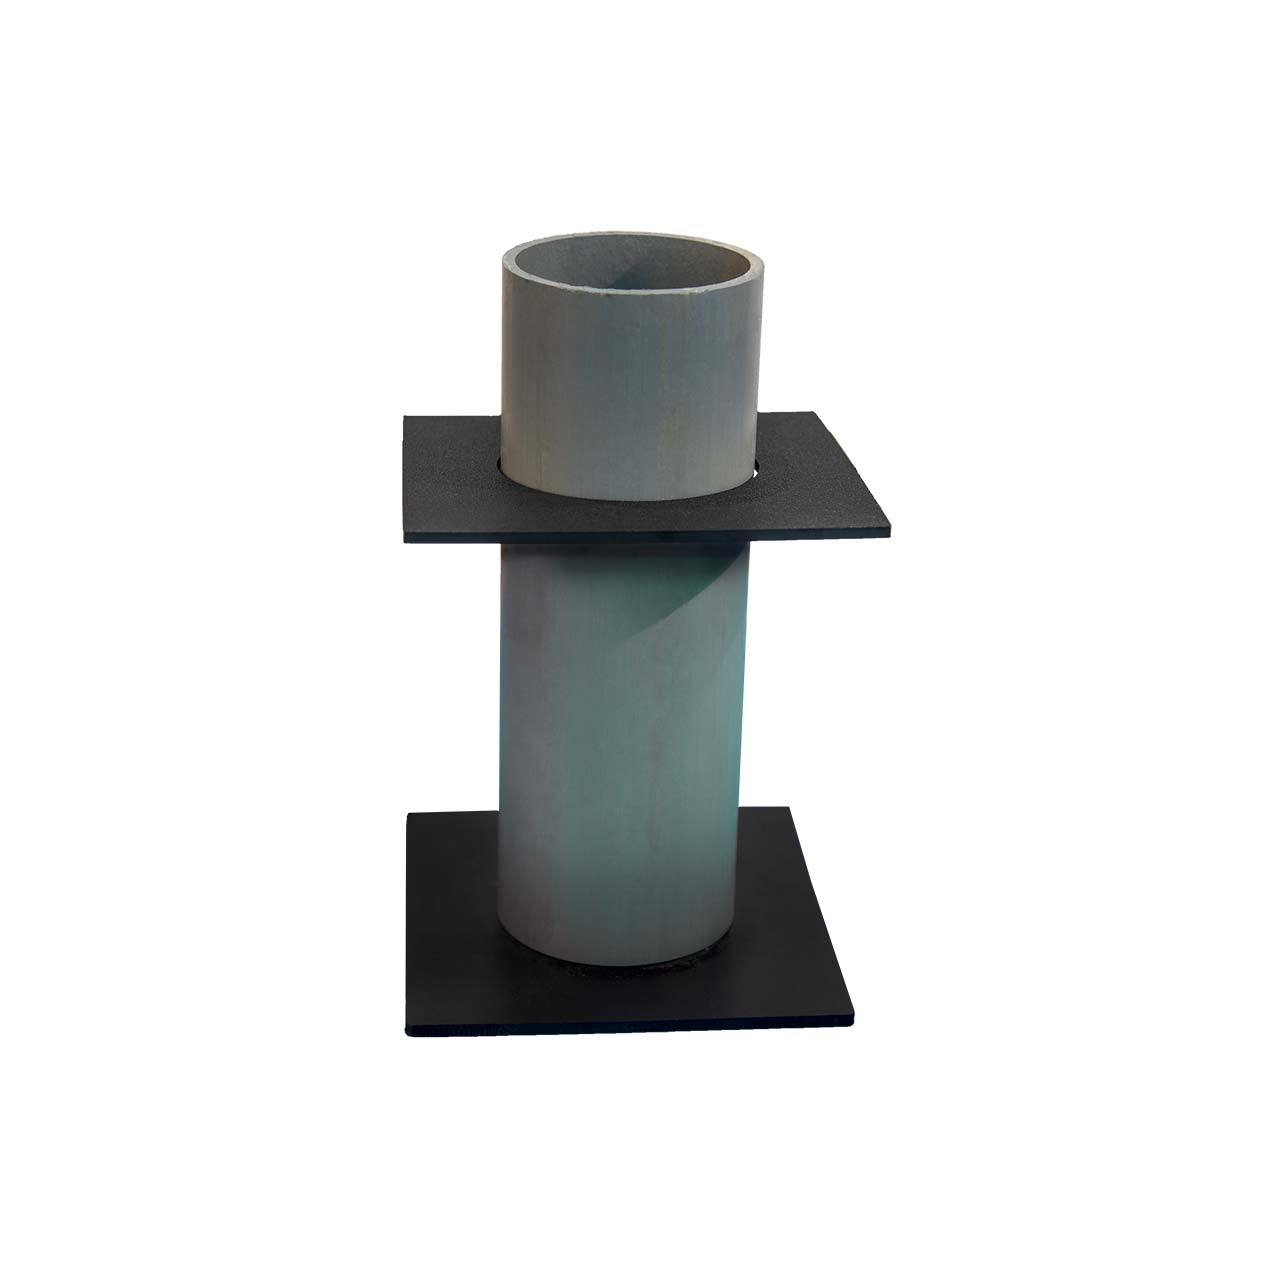 concrete-base-adapter-angled-view-22465.1513109016.jpg